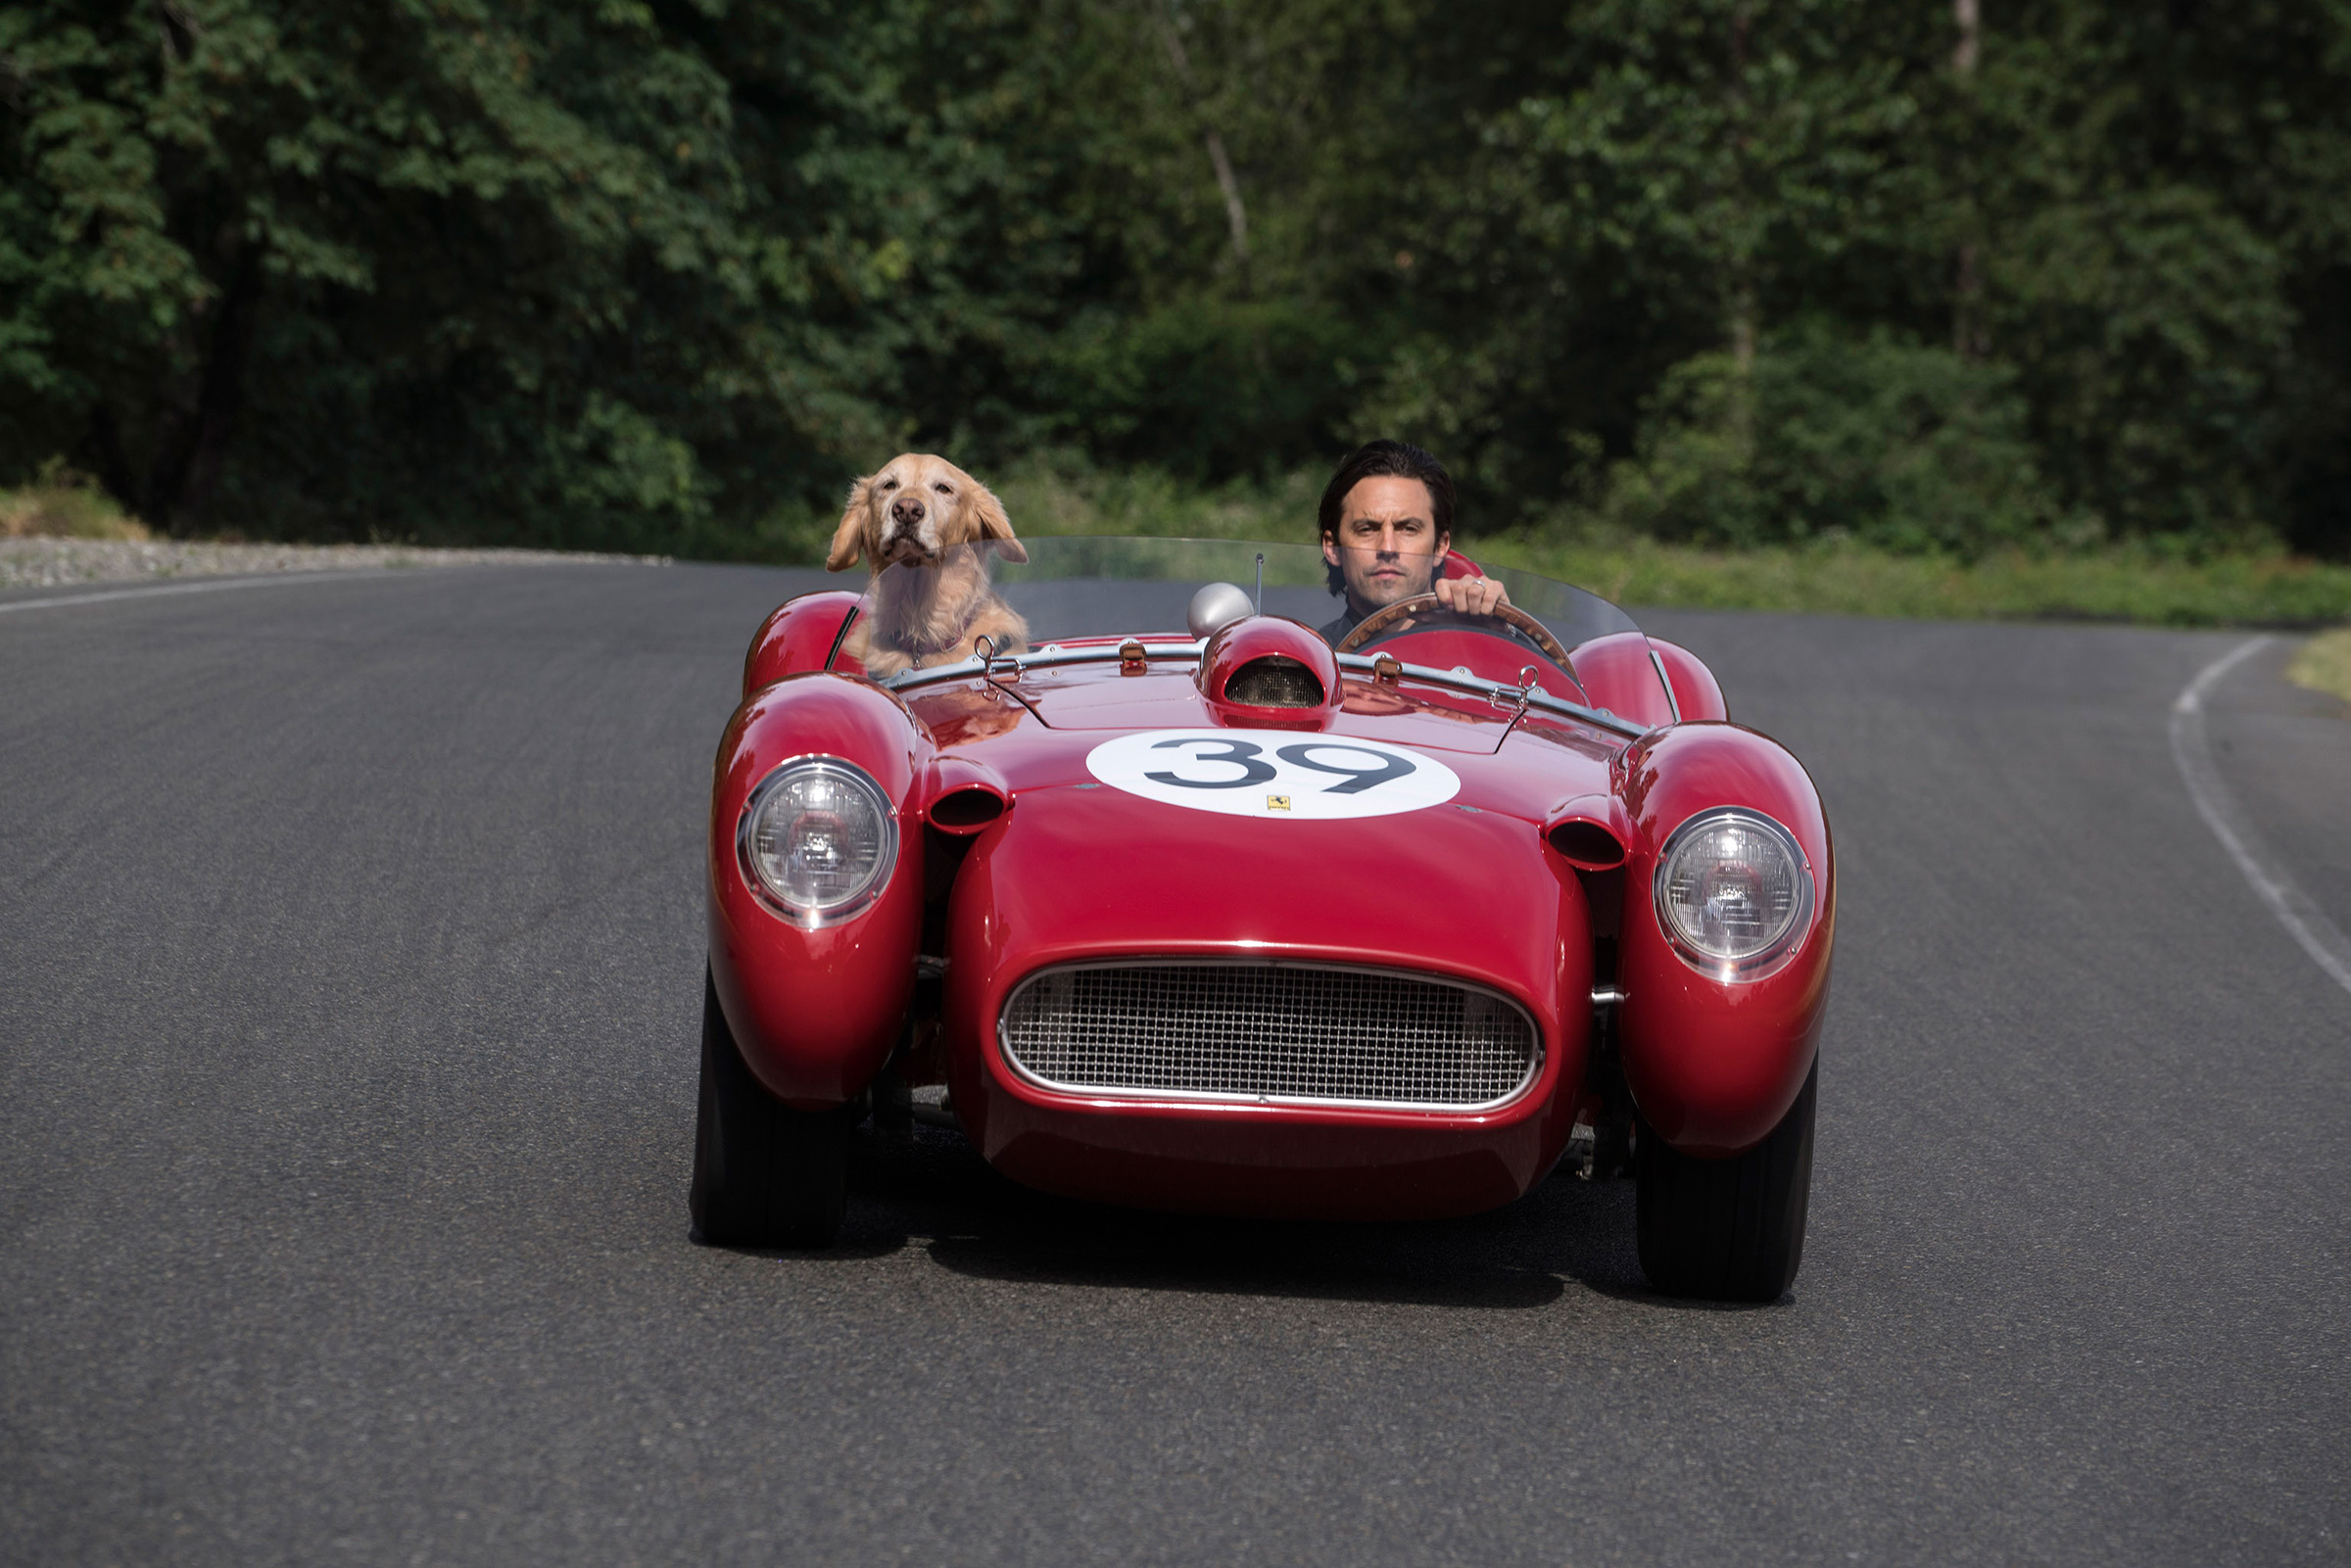 Ventimiglia and friend: If only dogs could drive! And also make movies.